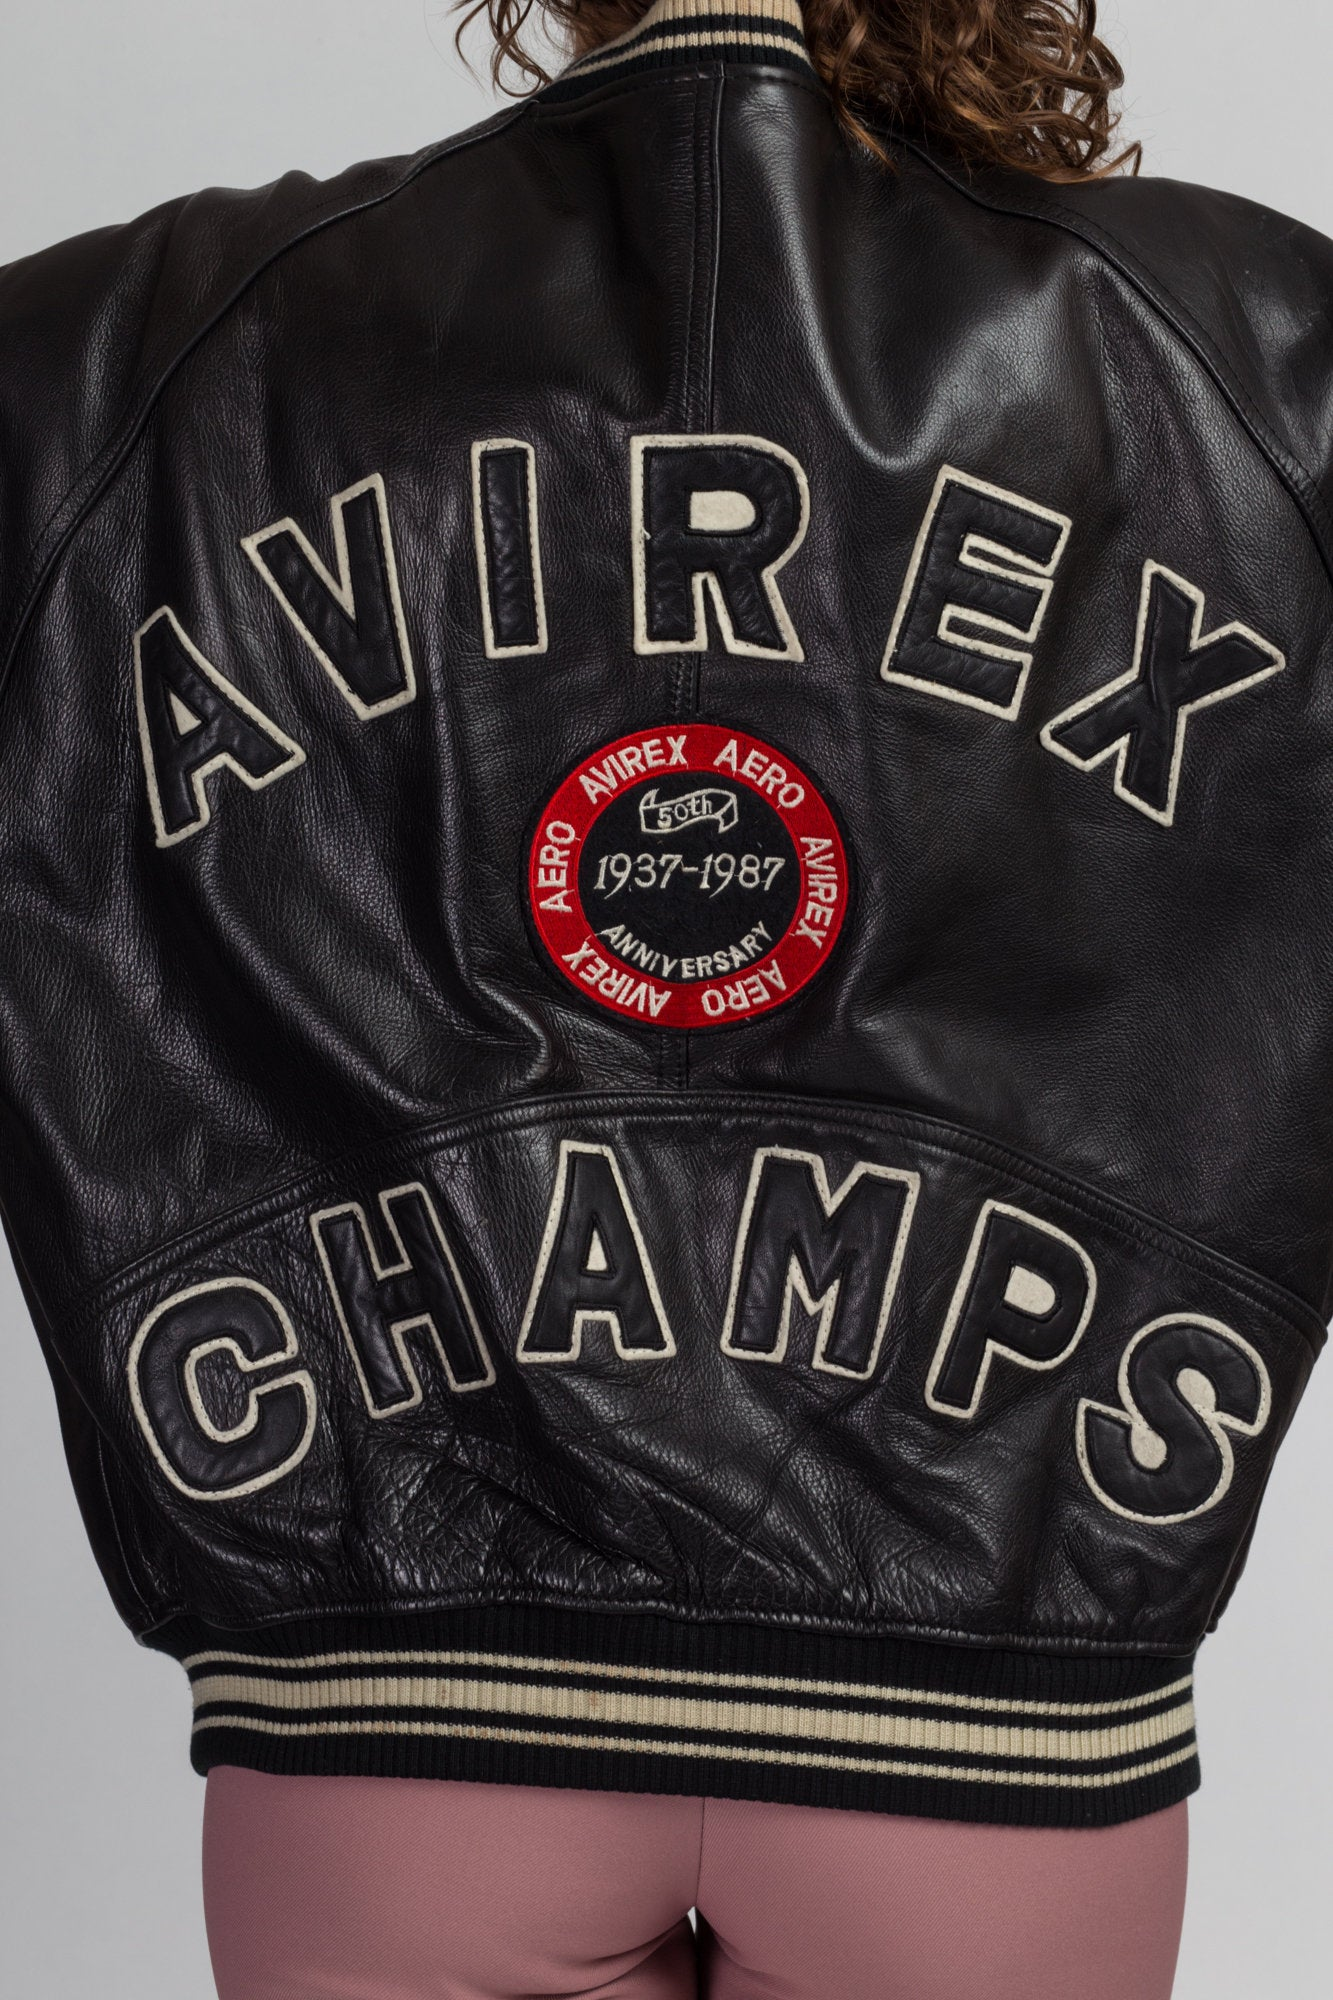 Vintage Avirex Champs 50th Anniversary Leather Bomber Jacket - Men's Large